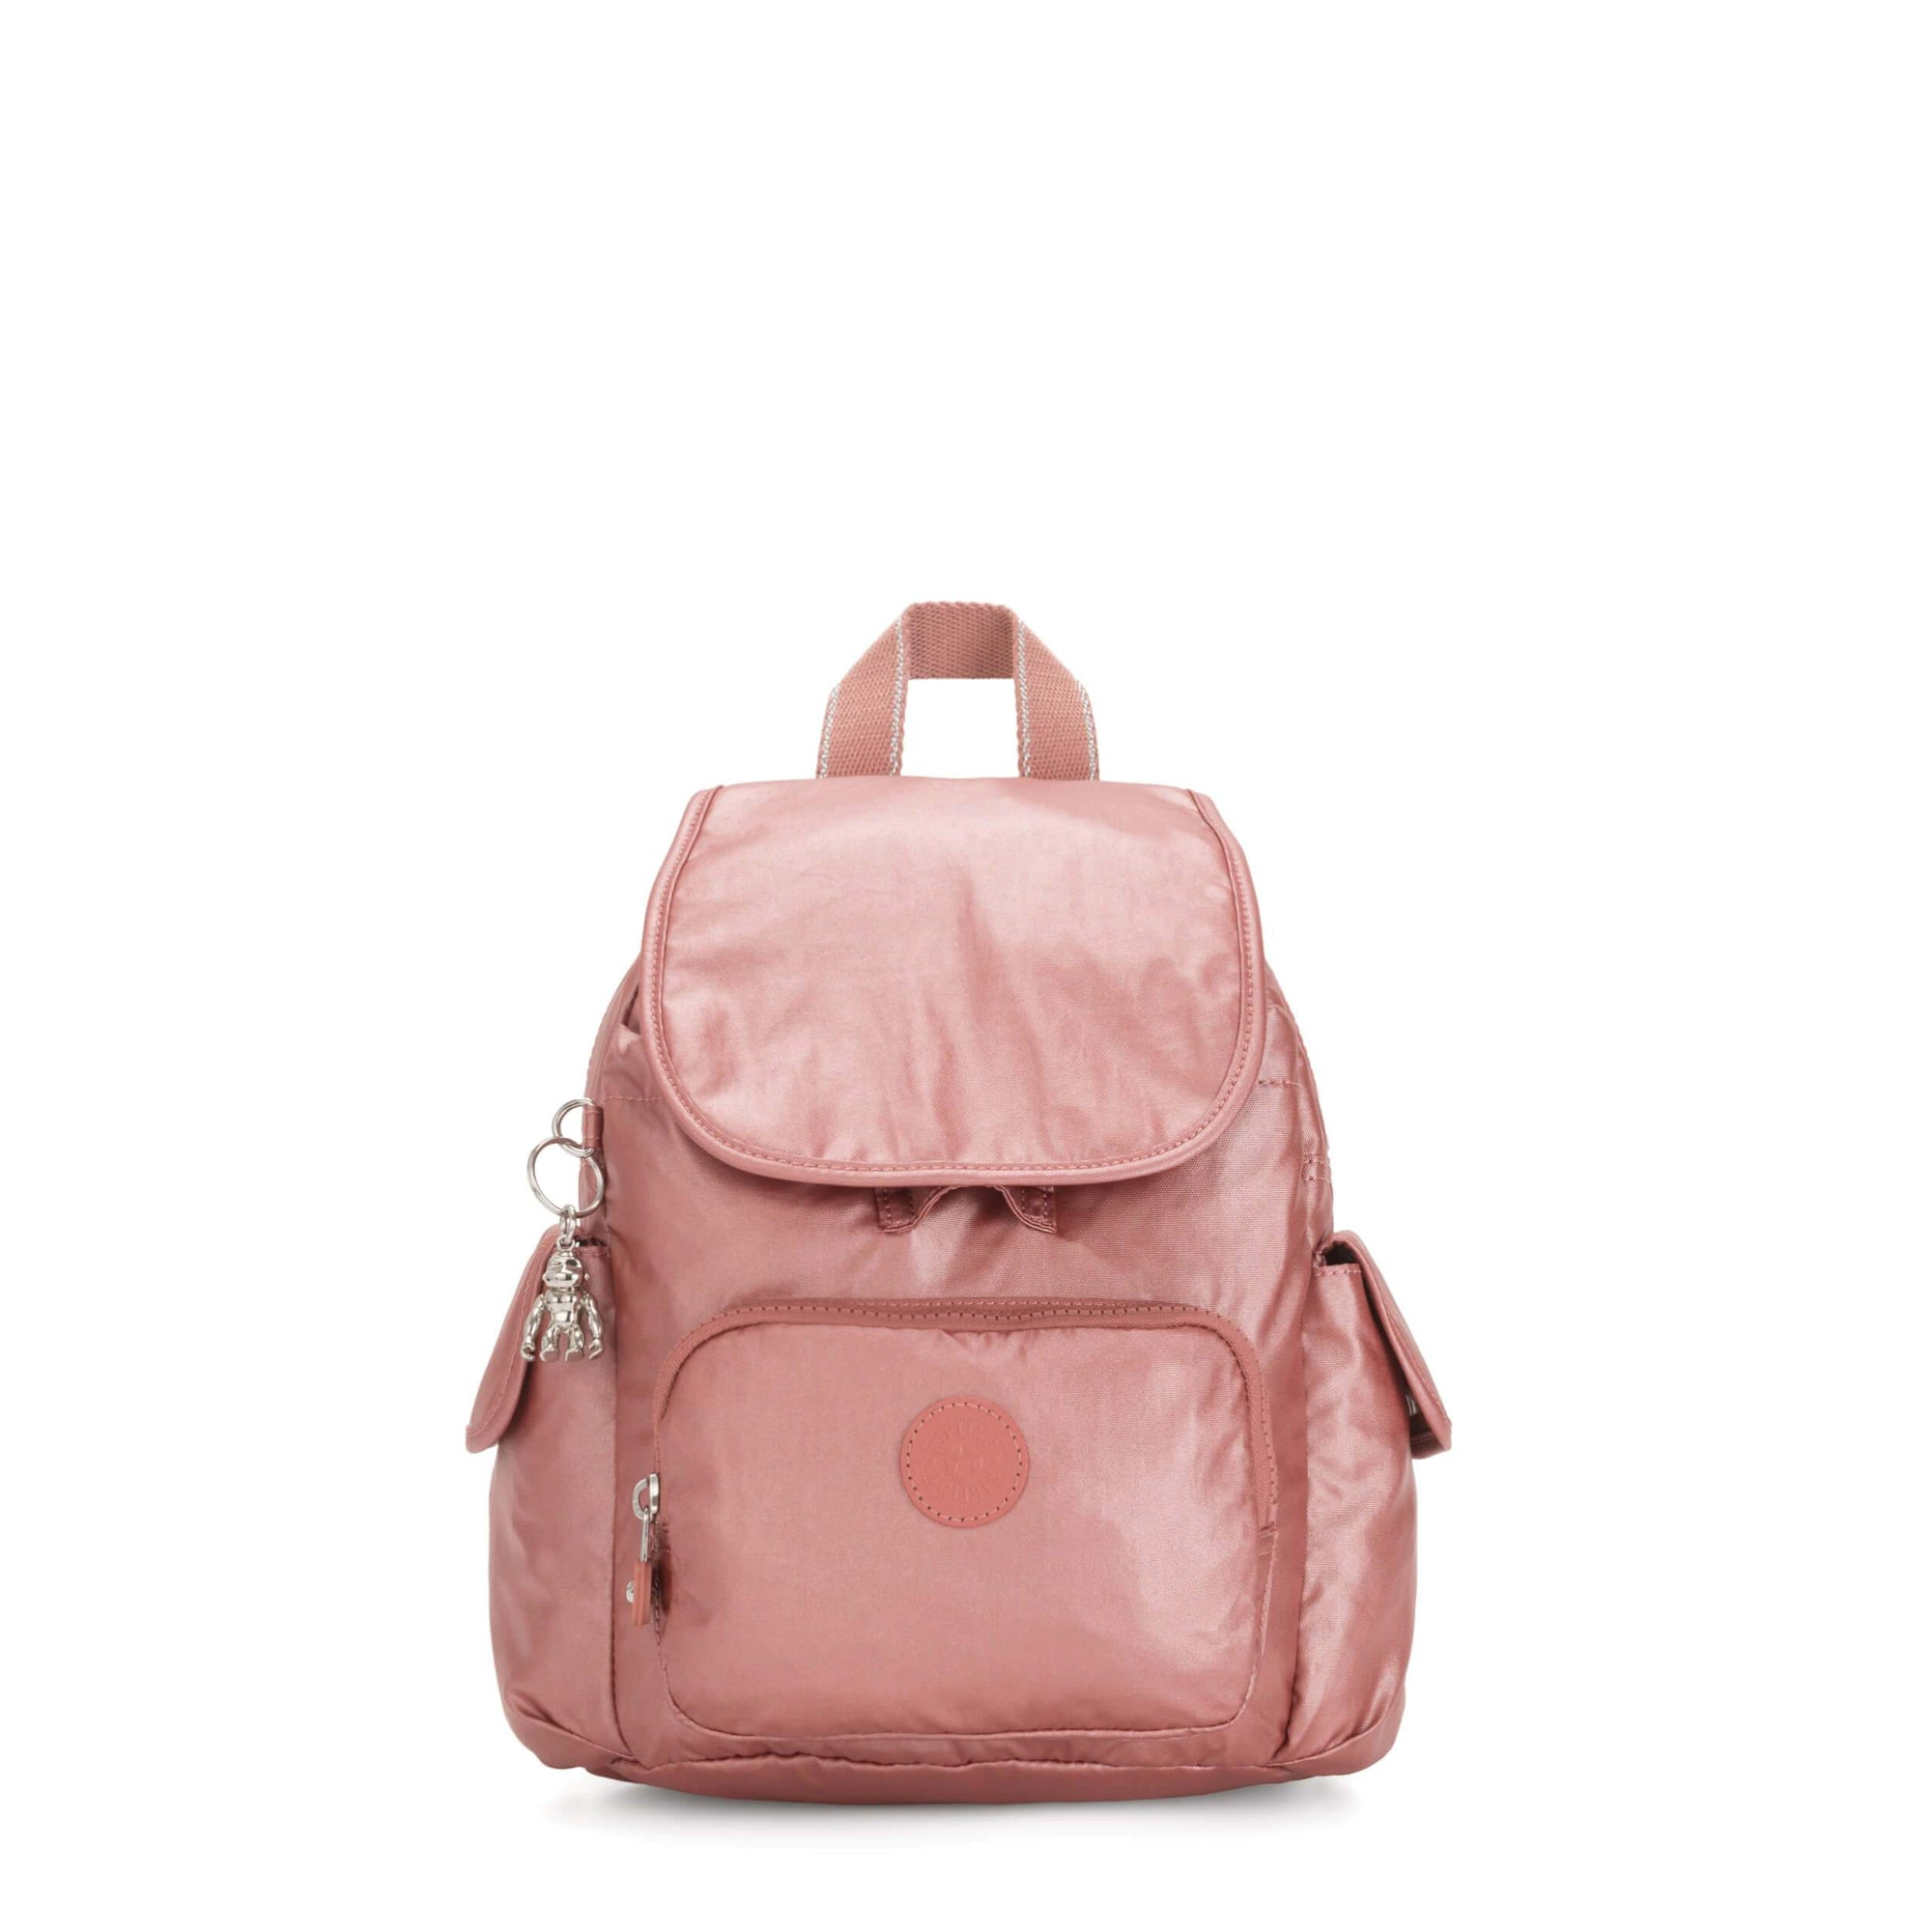 Backpack Kipling City Pack Mini Metallic Rust KI267148P